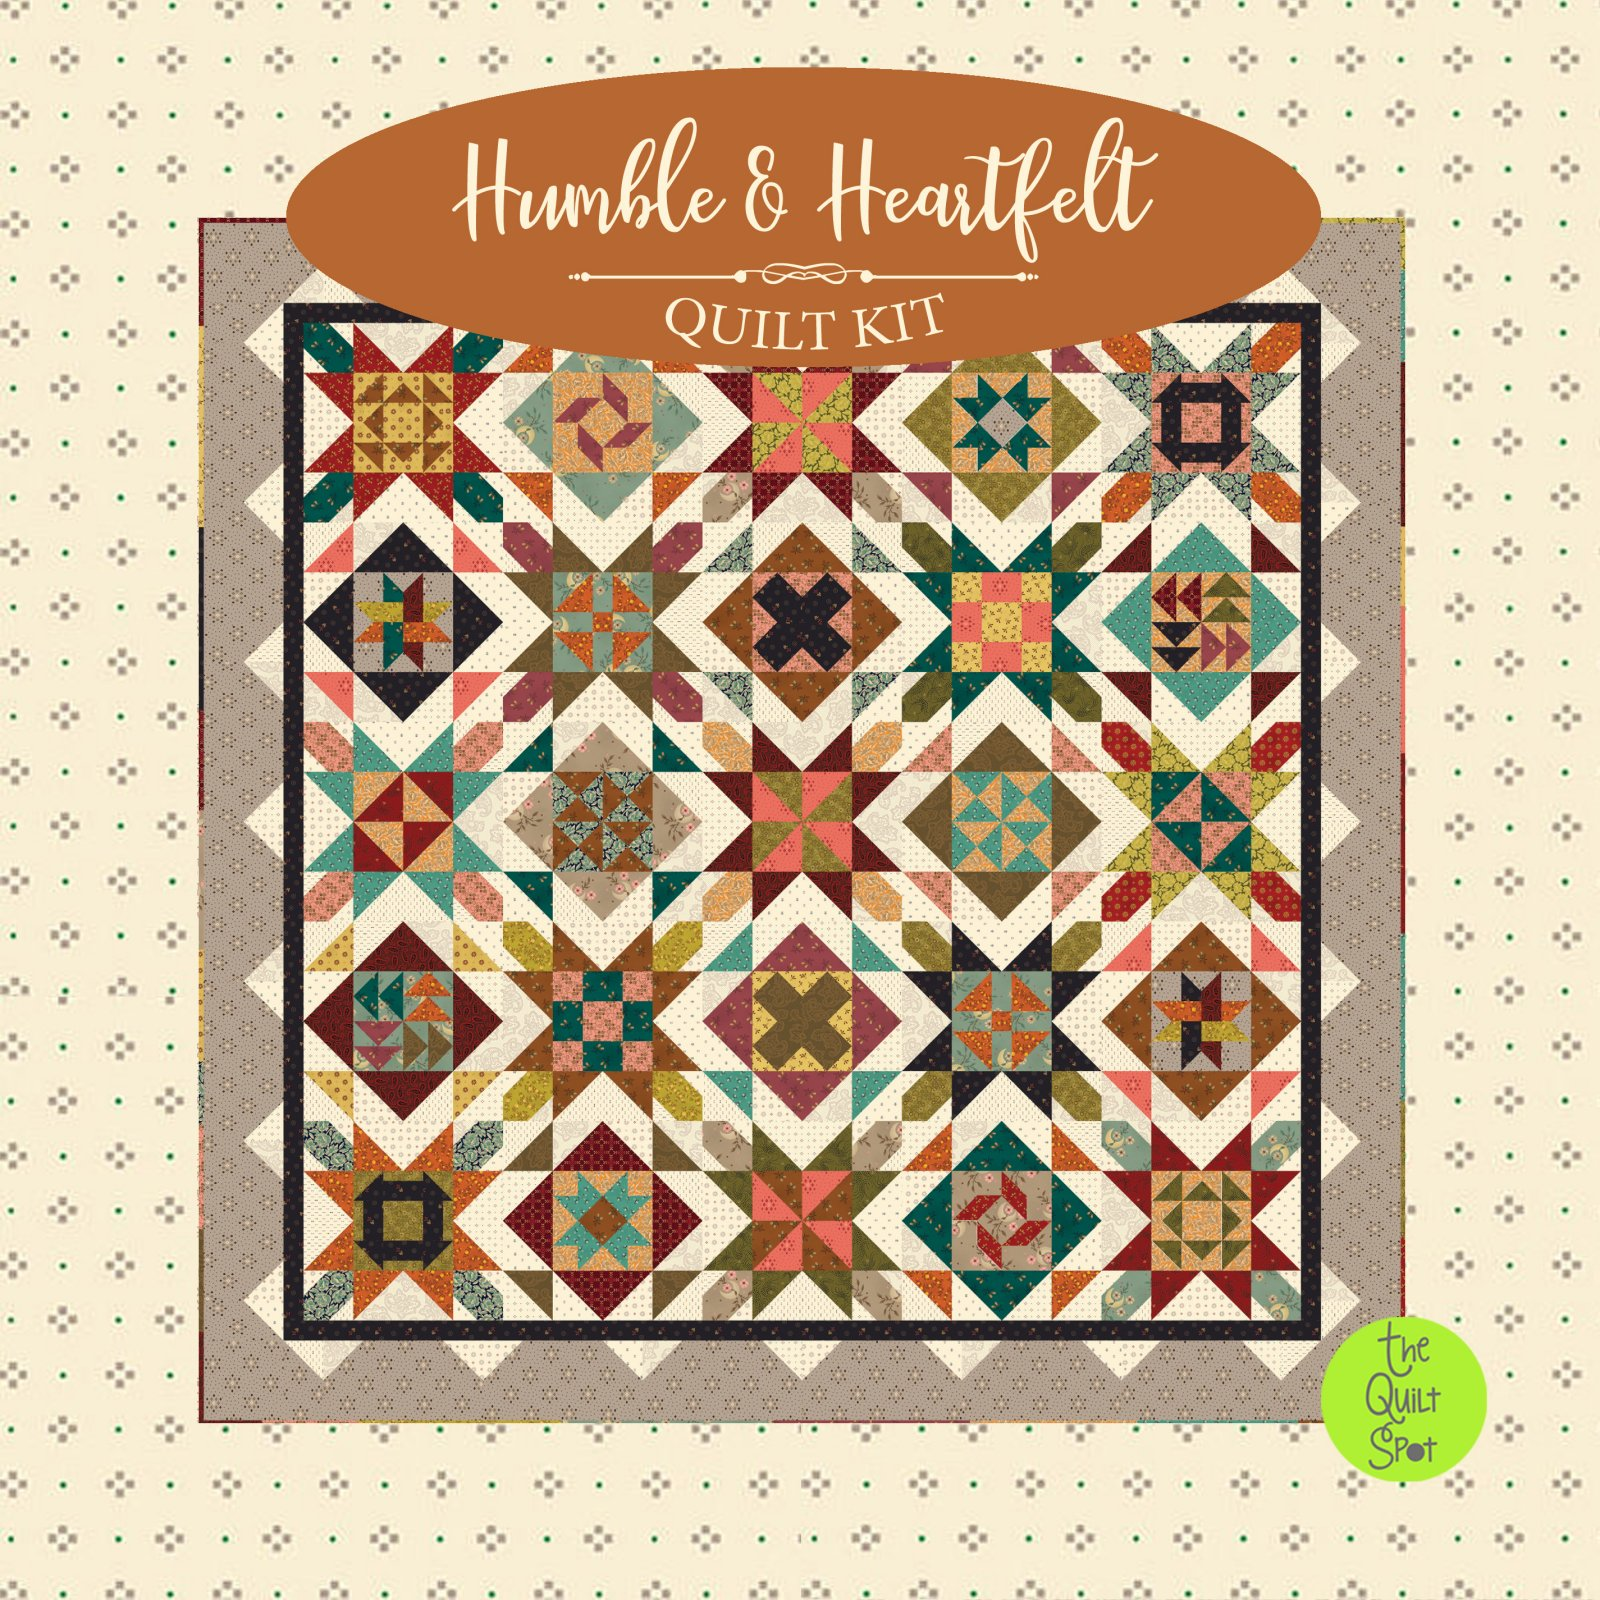 Humble & Heartfelt Quilt Kit by Kim Diehl featuring Gratitude and Grace